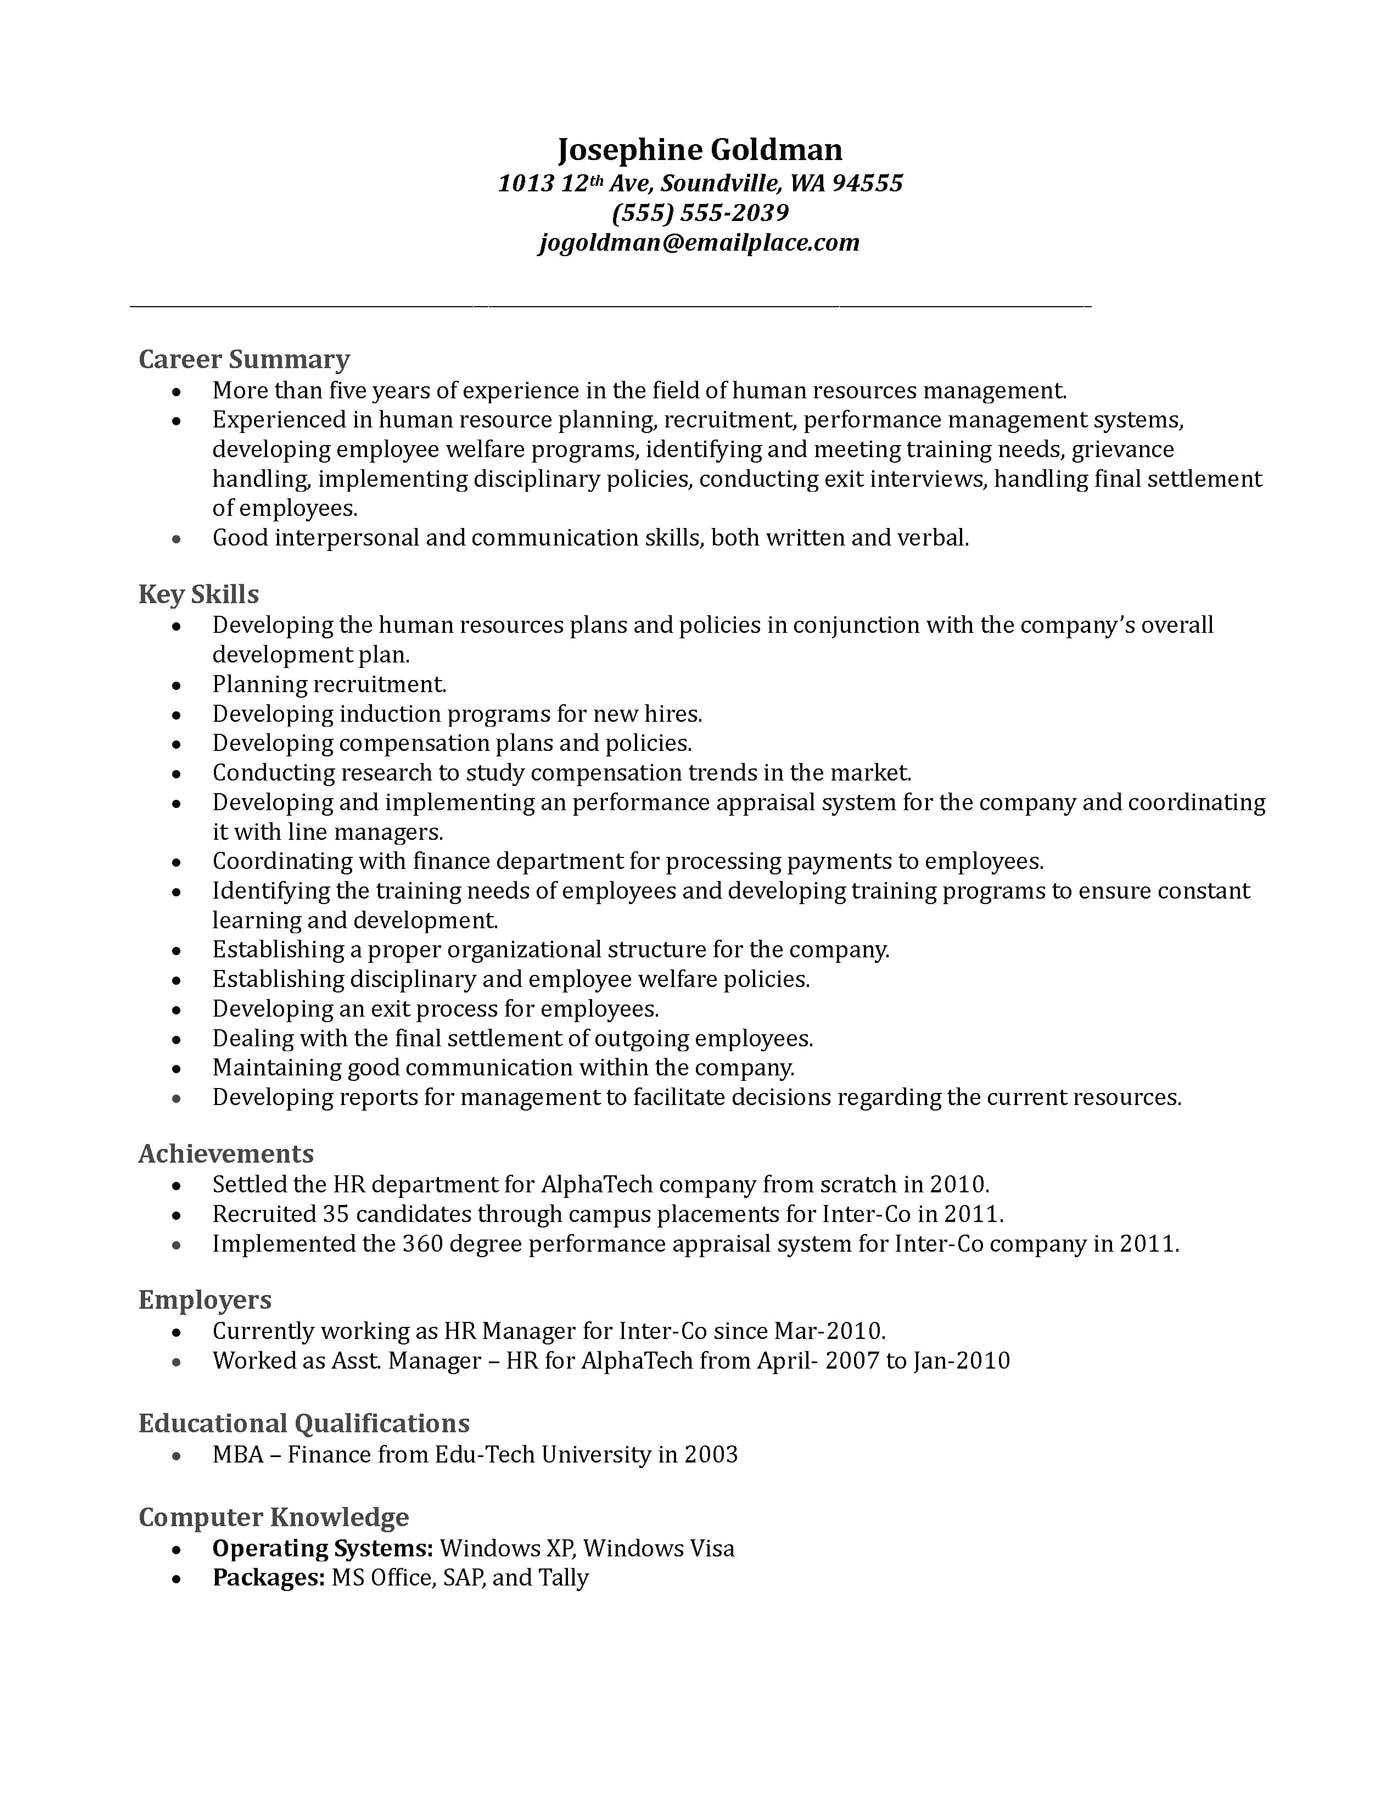 Cover Letter for Hr Fresher Job Professional Resume Human Resources Manager Bongdaao Com